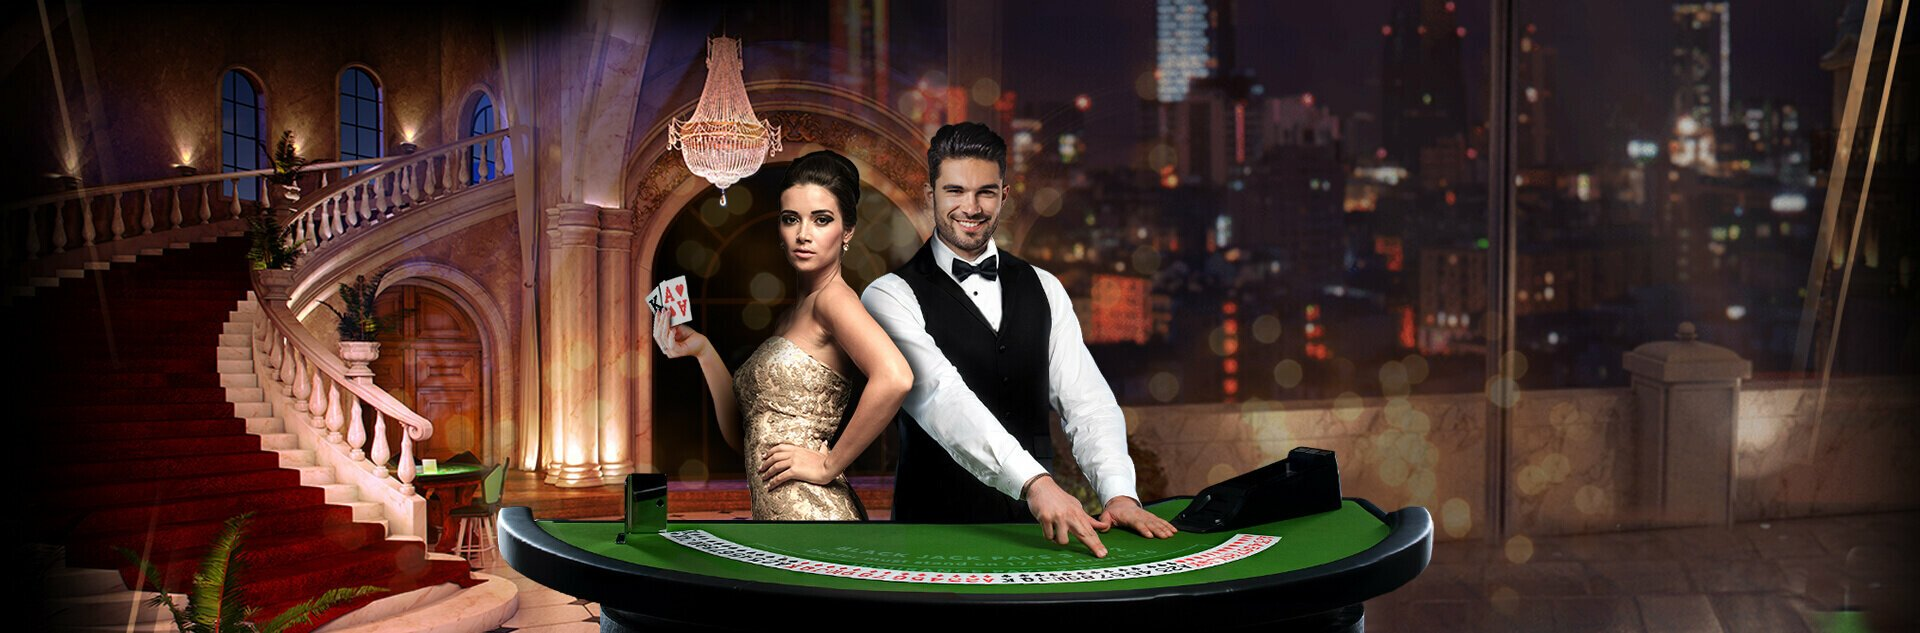 Grand Ivy casino review UK